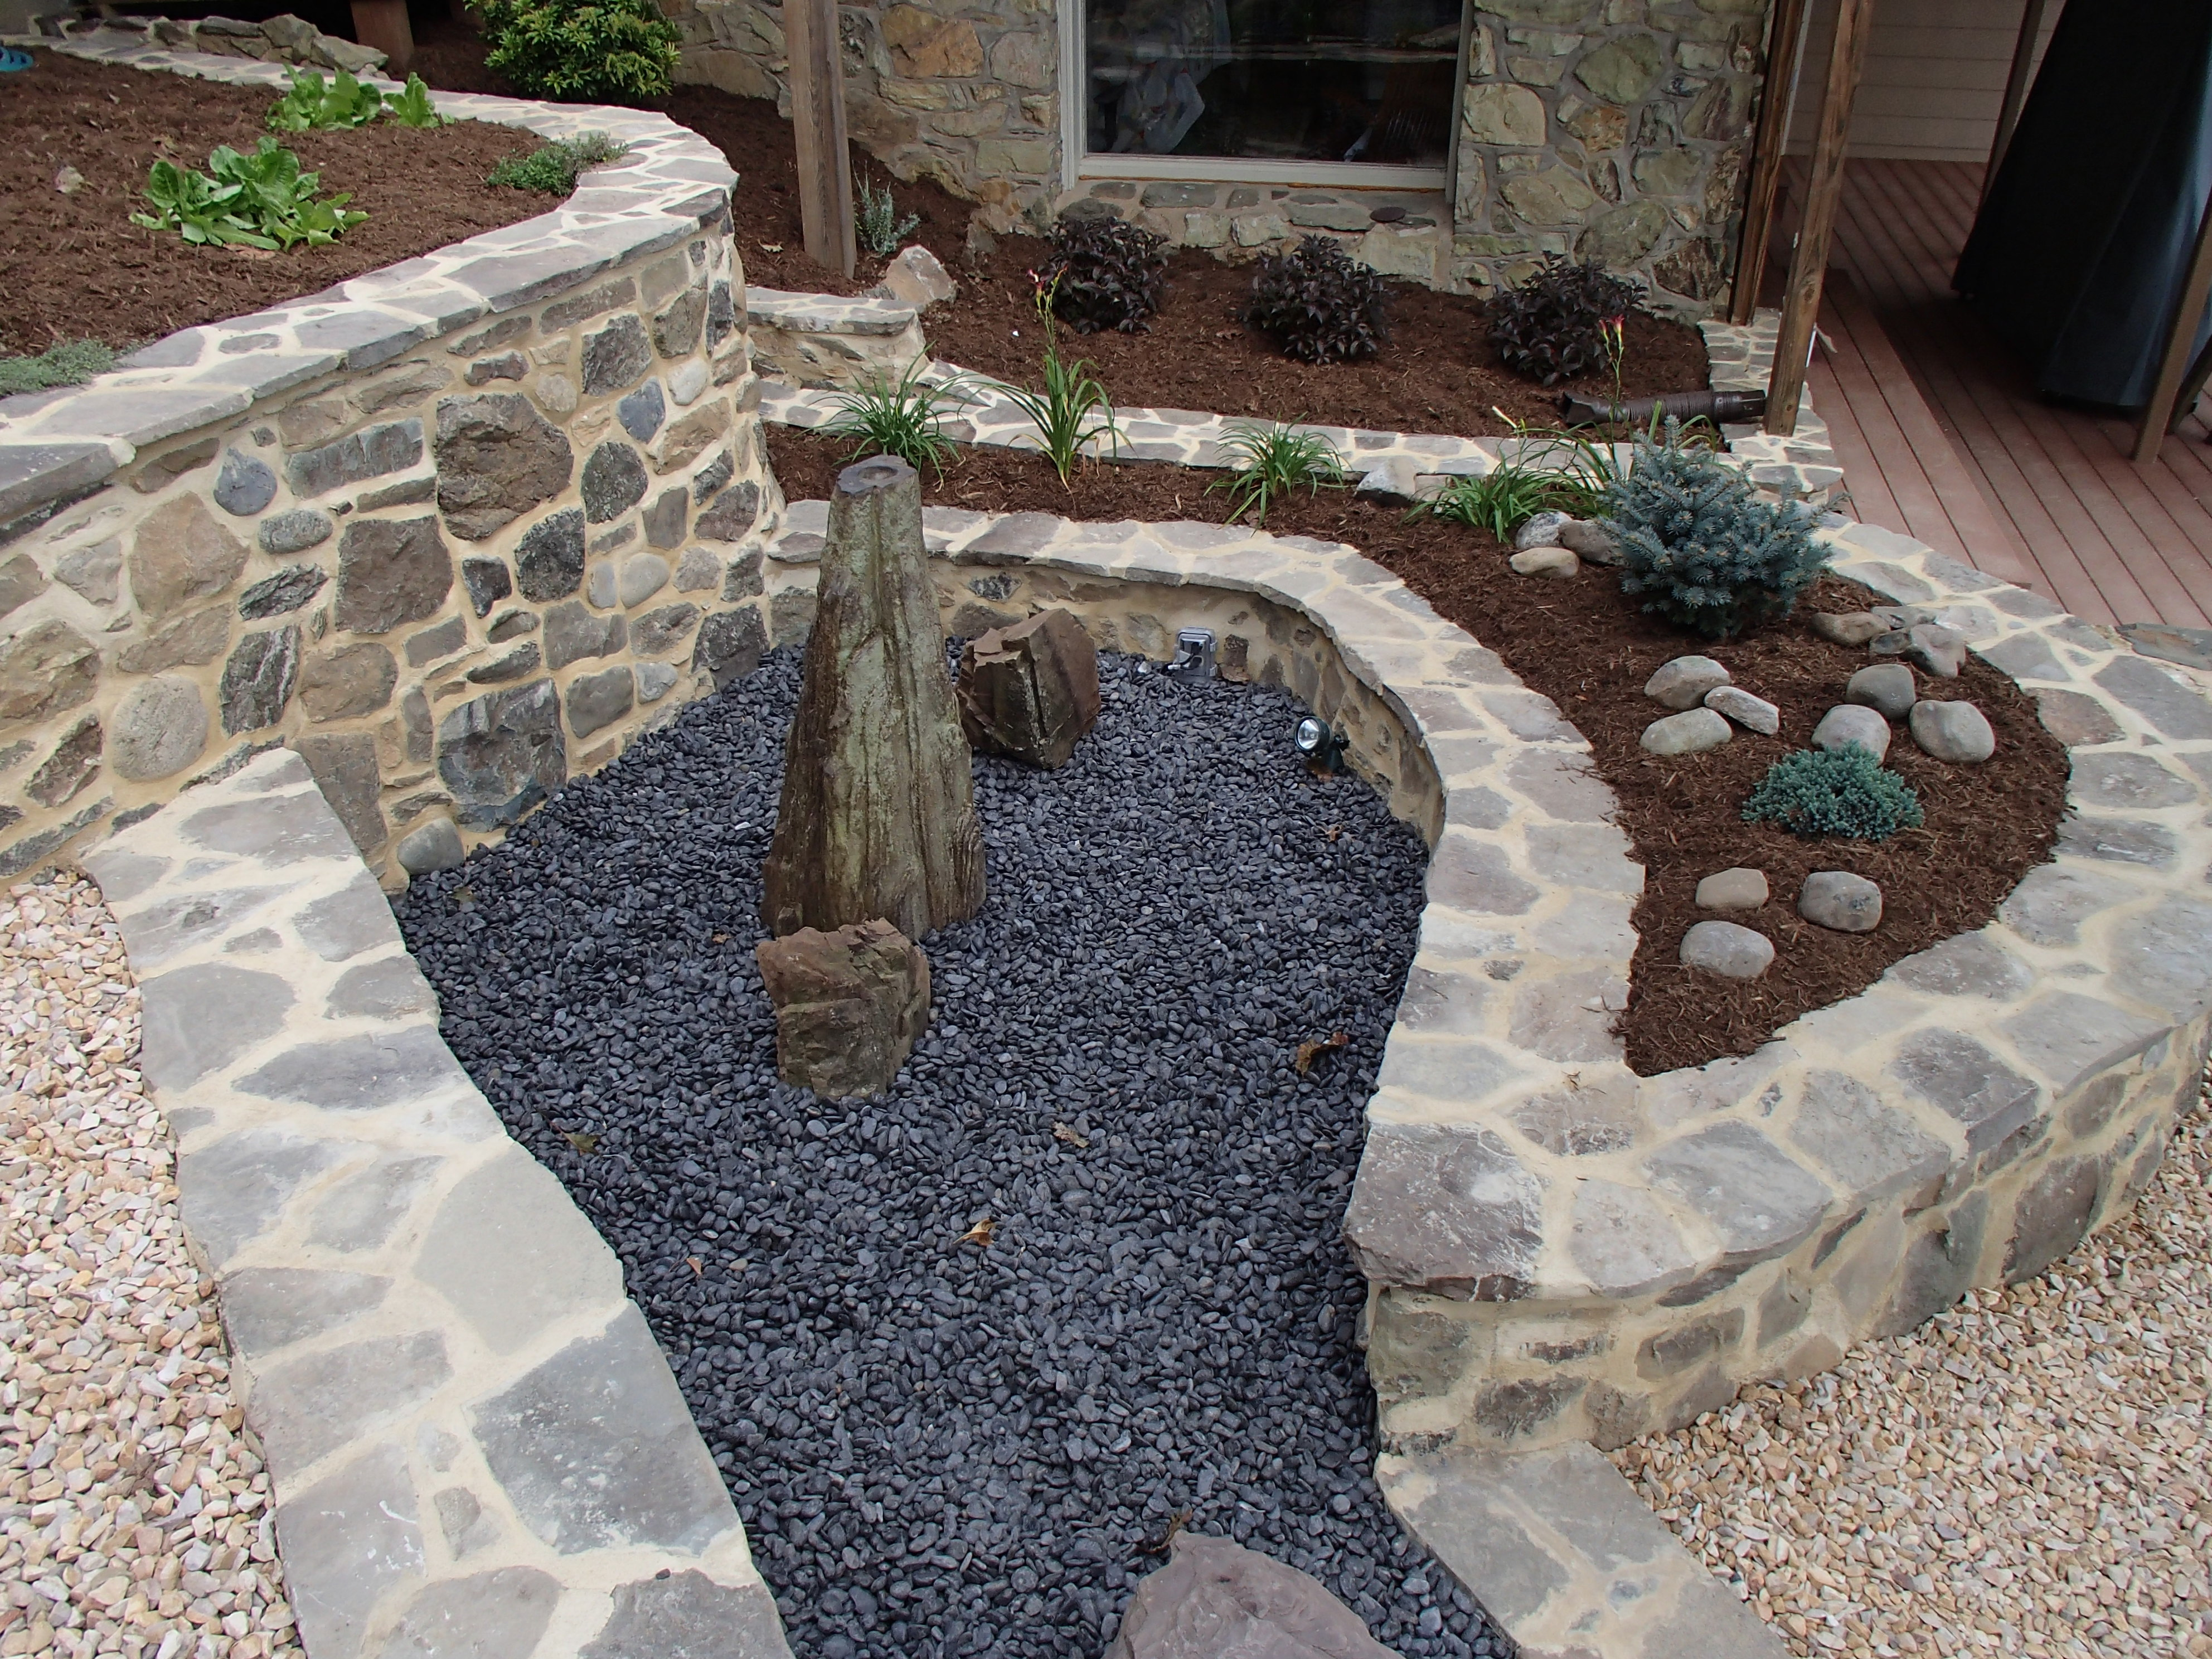 Natural stone retaining walls and pondless water fountain